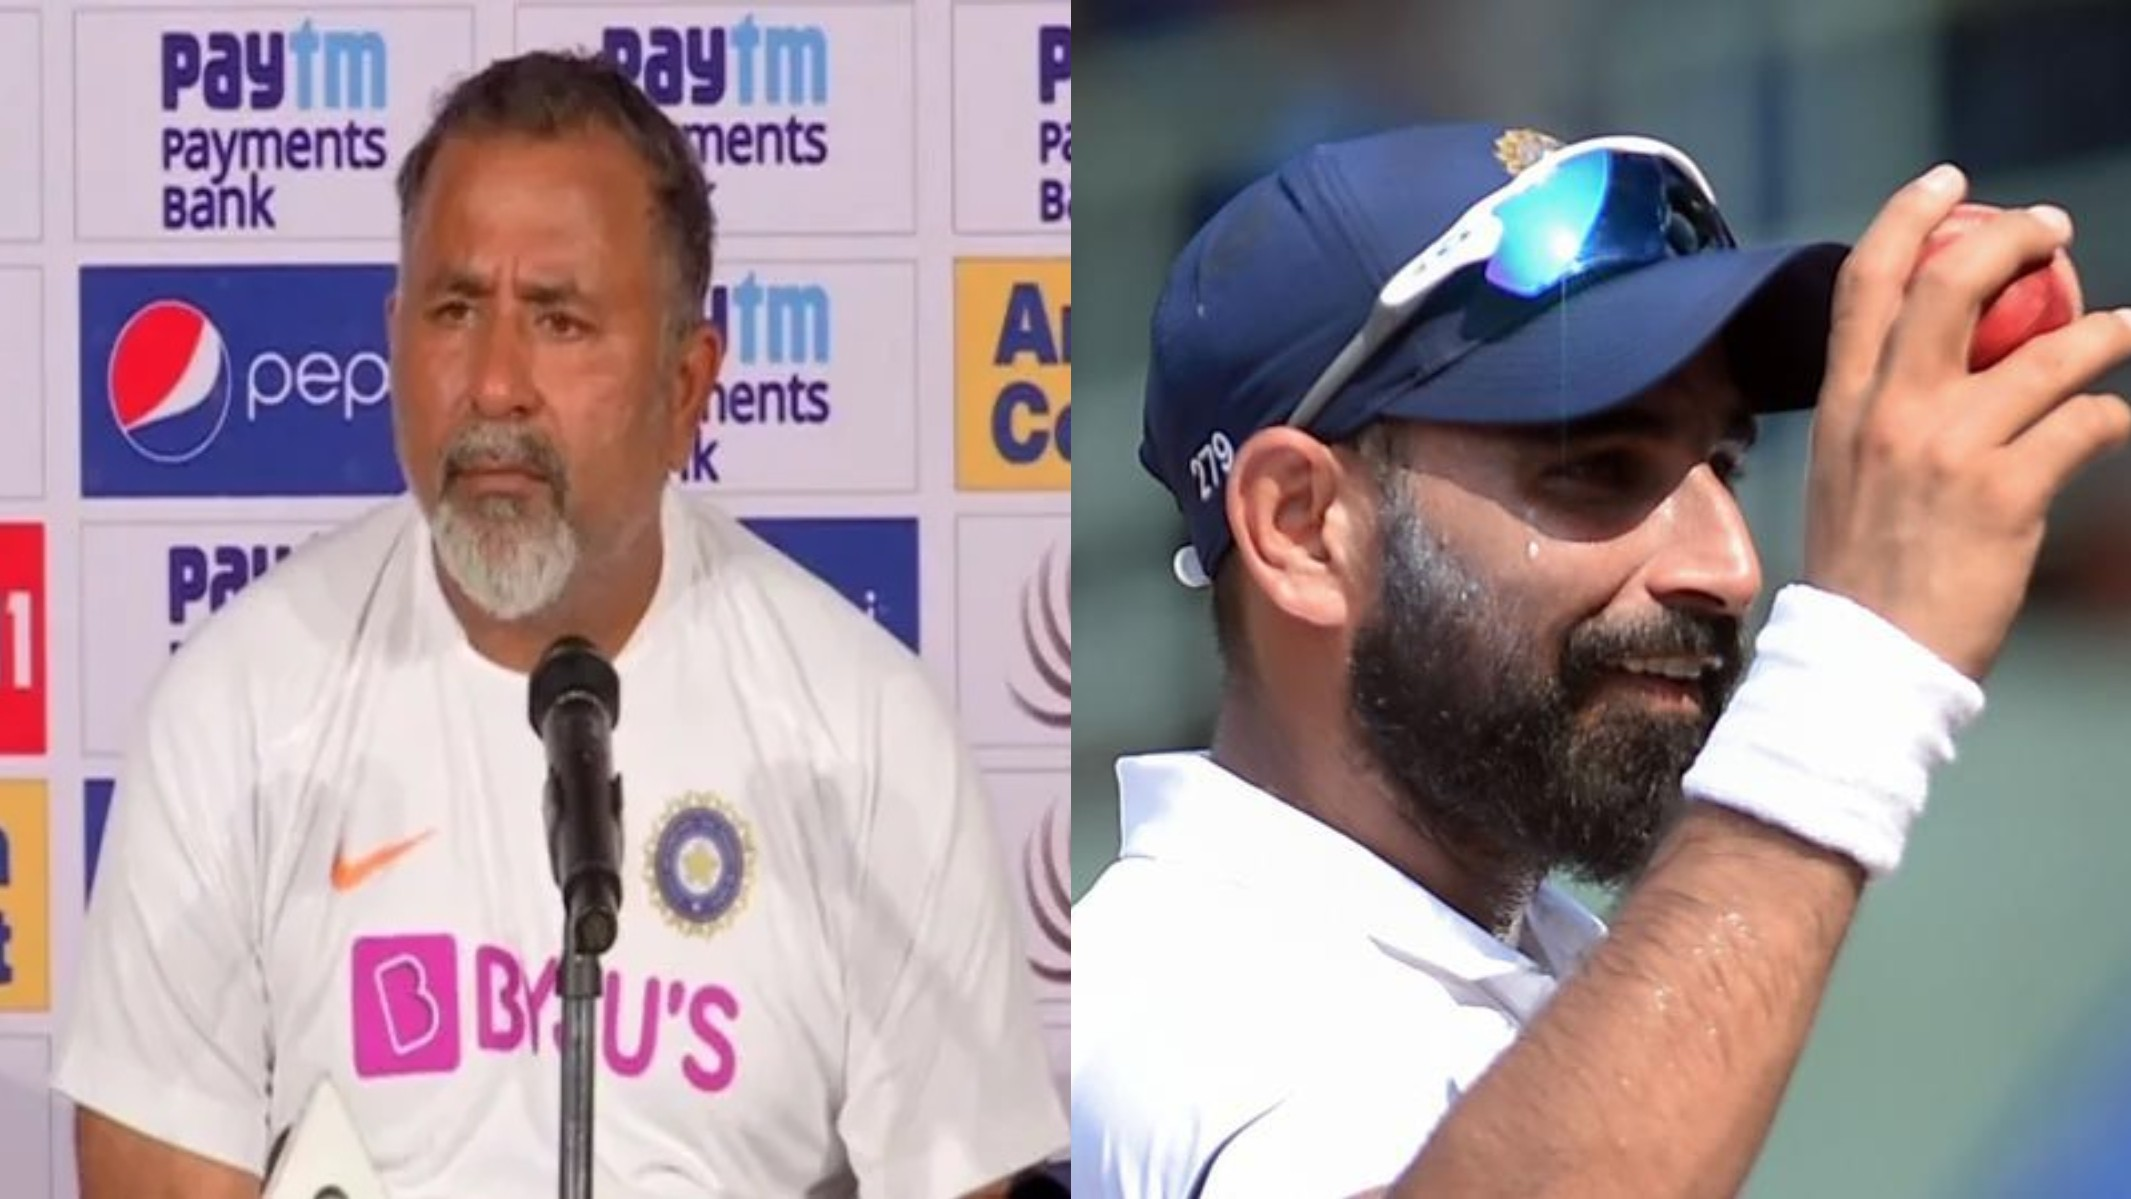 IND v SA 2019: Bharat Arun says team aspiring to be no.1 needs to learn to adapt; lauds Mohammad Shami